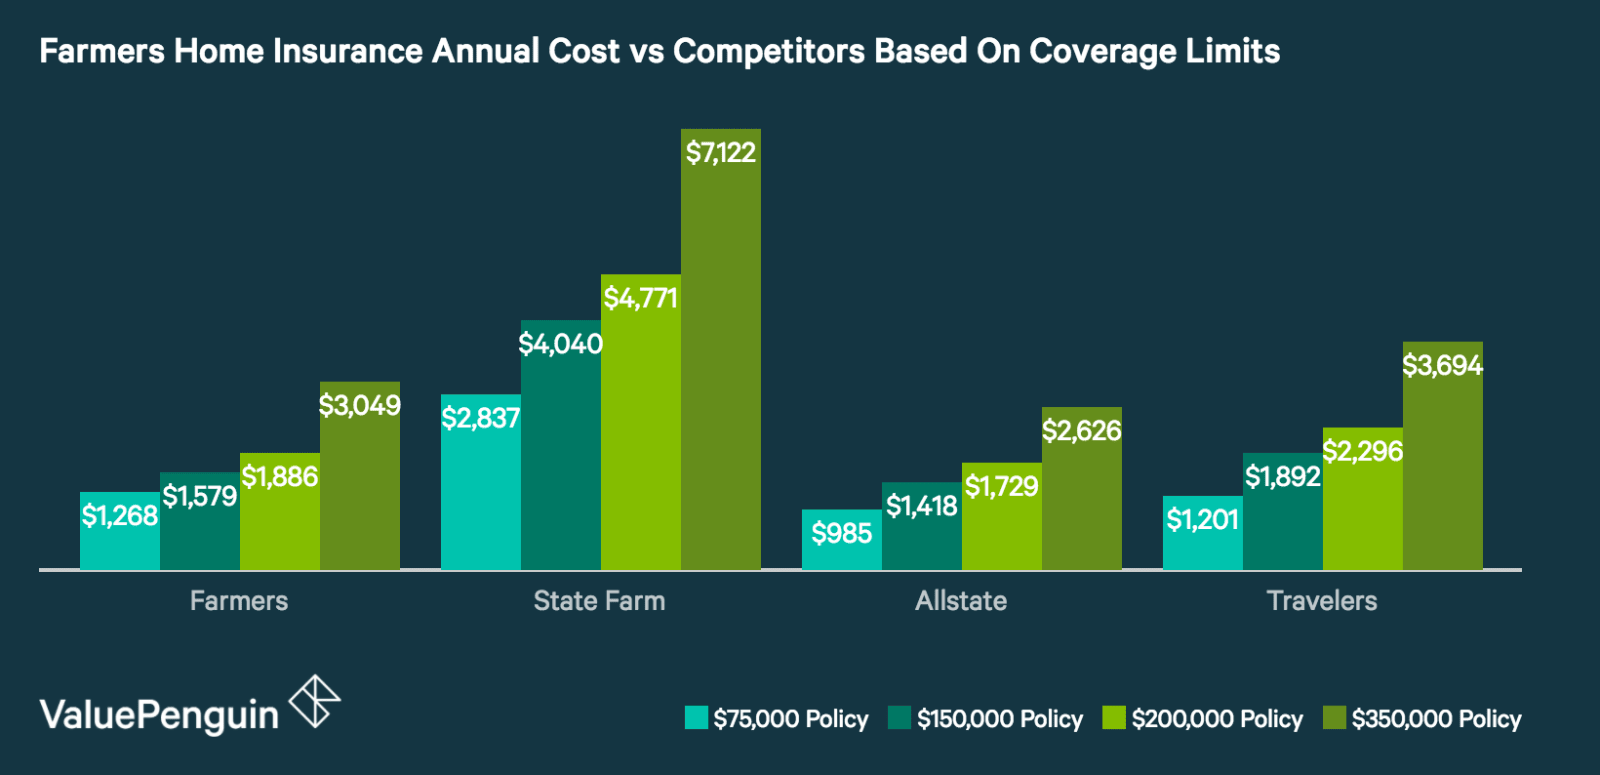 How Do Farmers' Home Insurance Quotes Compare to Other Insurers?